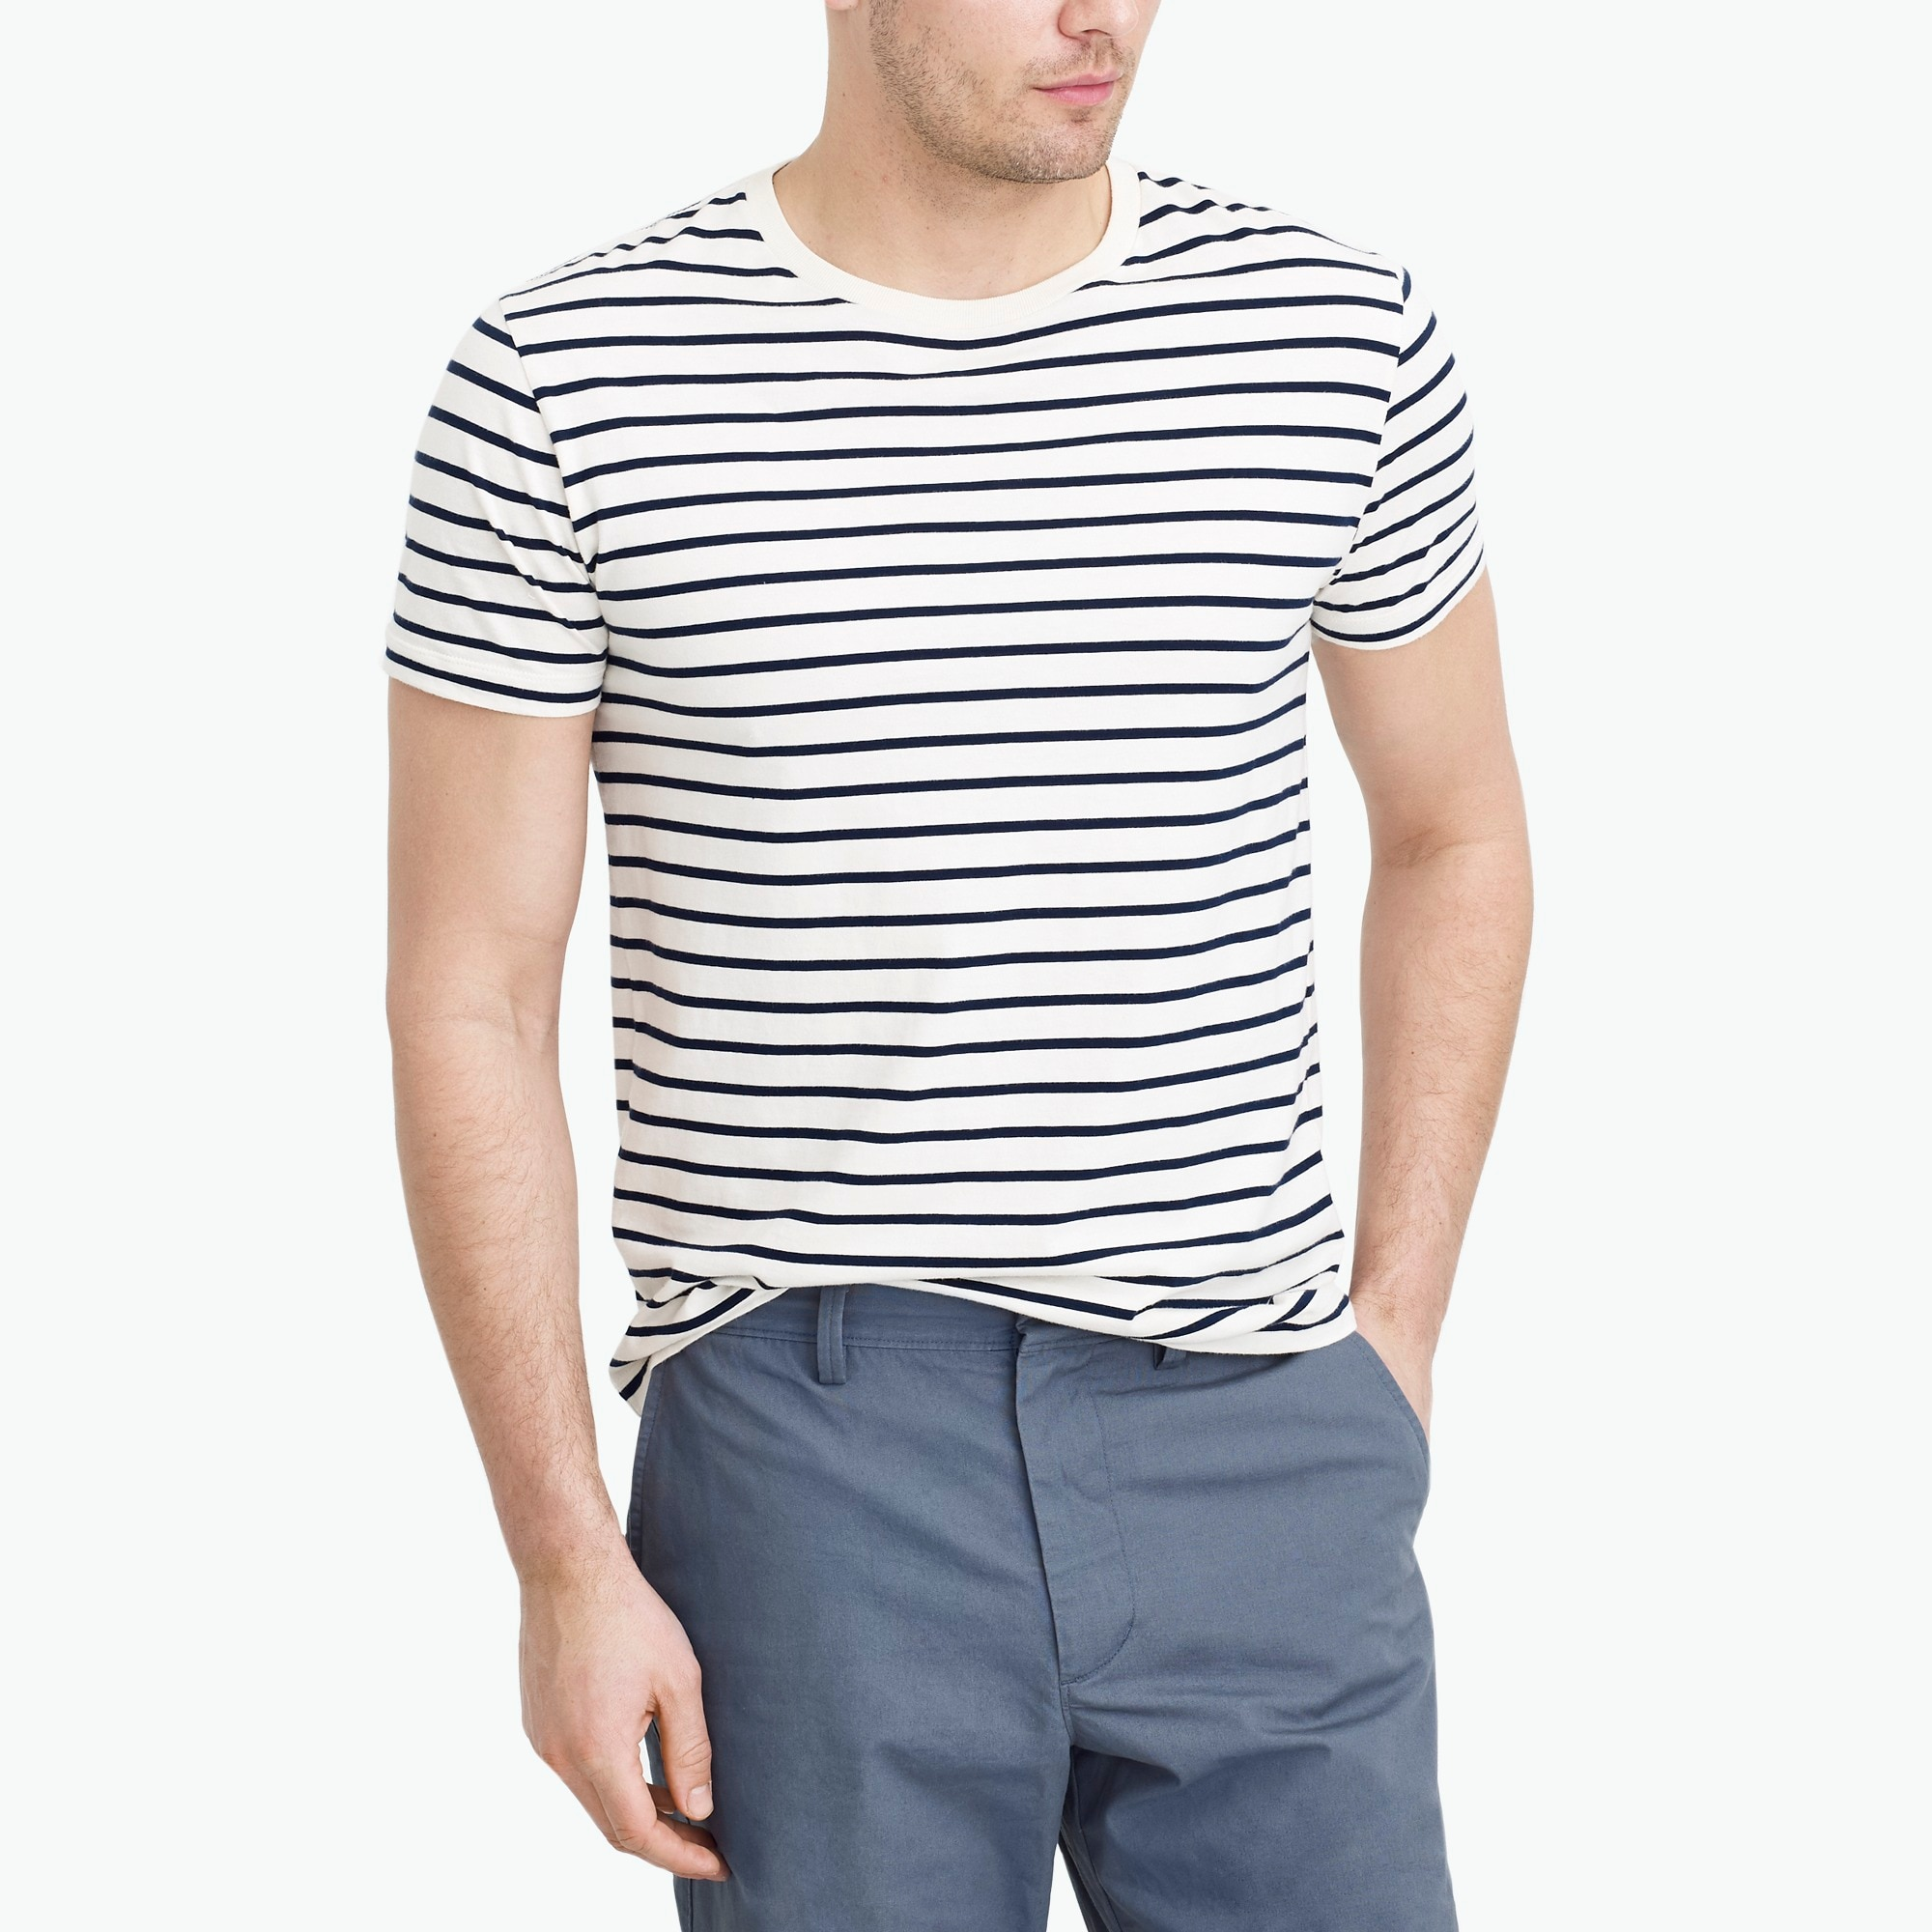 J.Crew Mercantile slim Broken-in deck-striped T-shirt